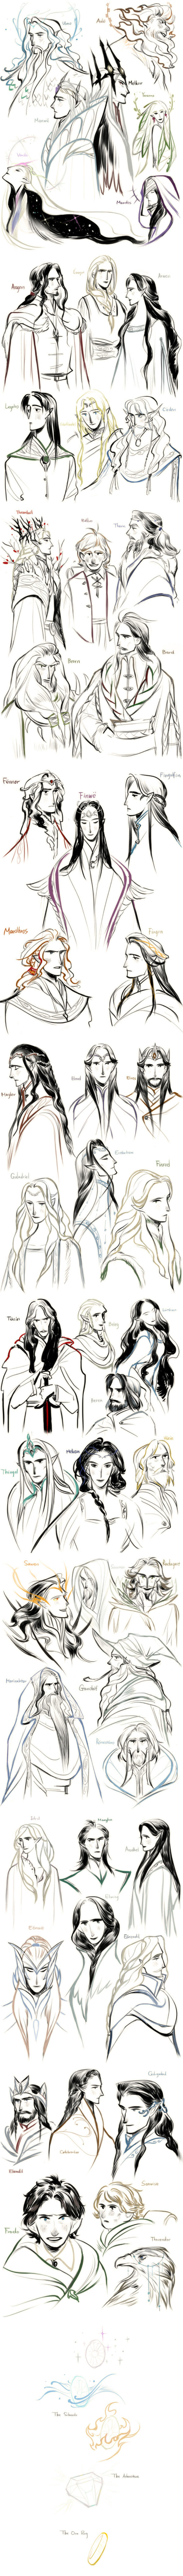 [Tolkien]54 characters by Wavesheep